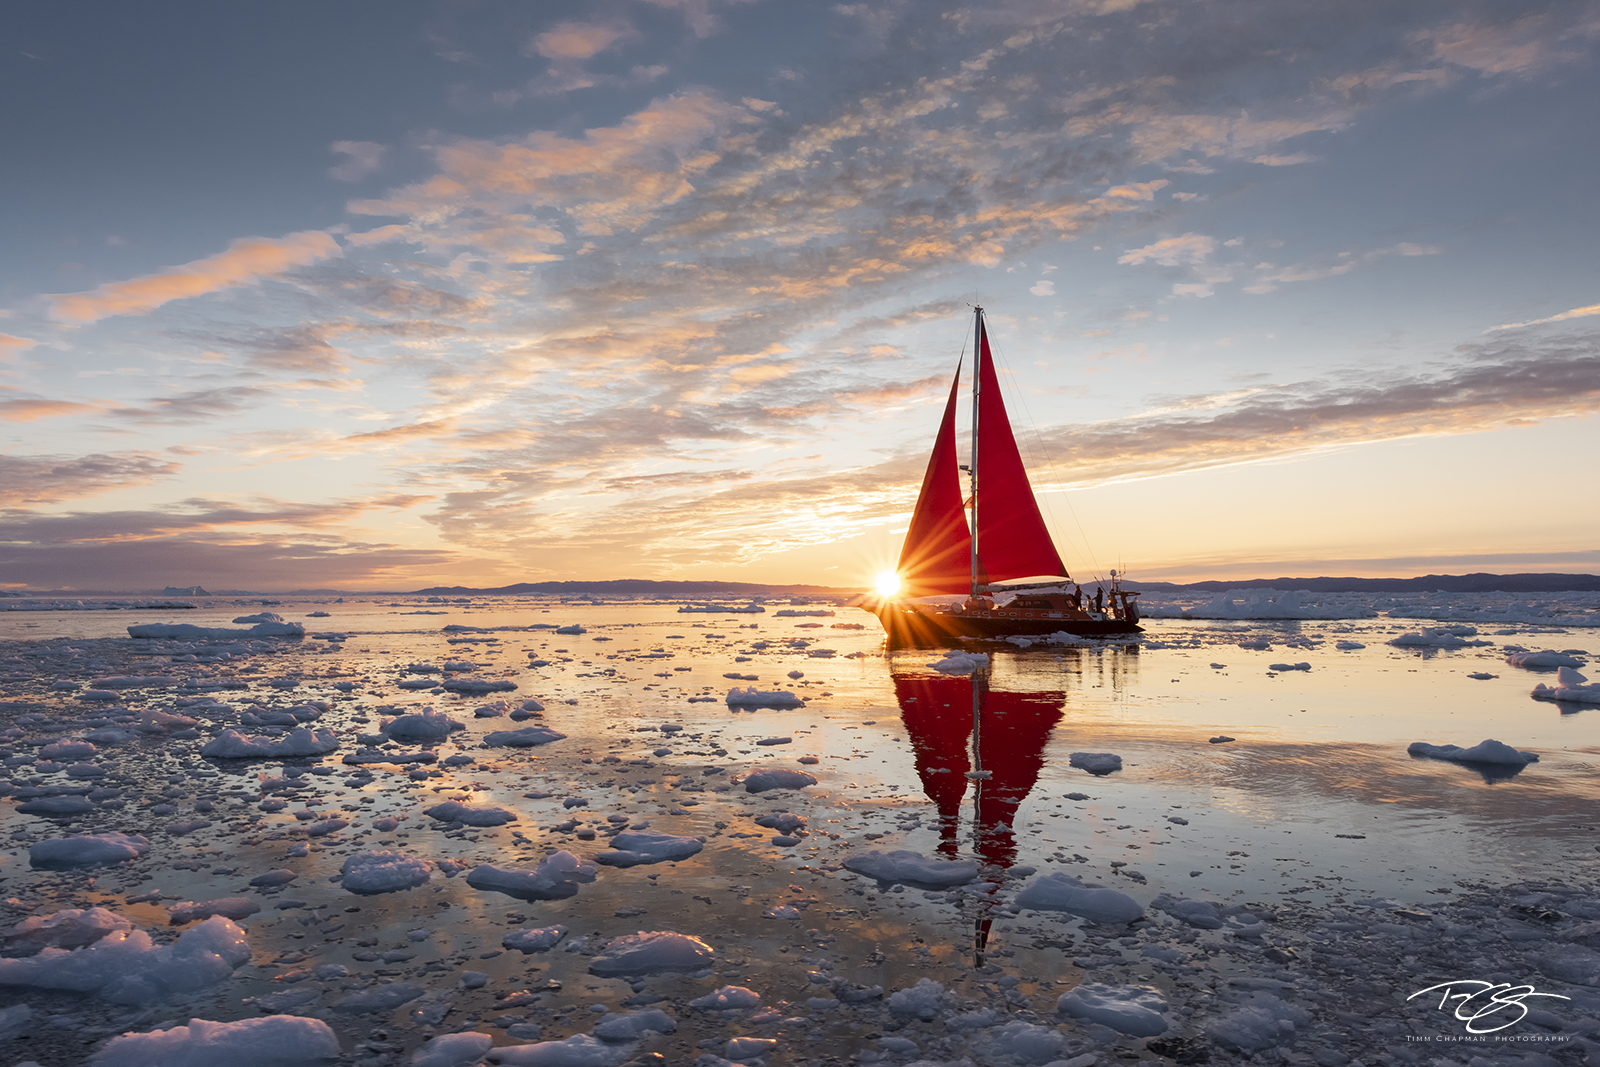 A sailboat welcomes the morning sun as it navigates its way through icy waters